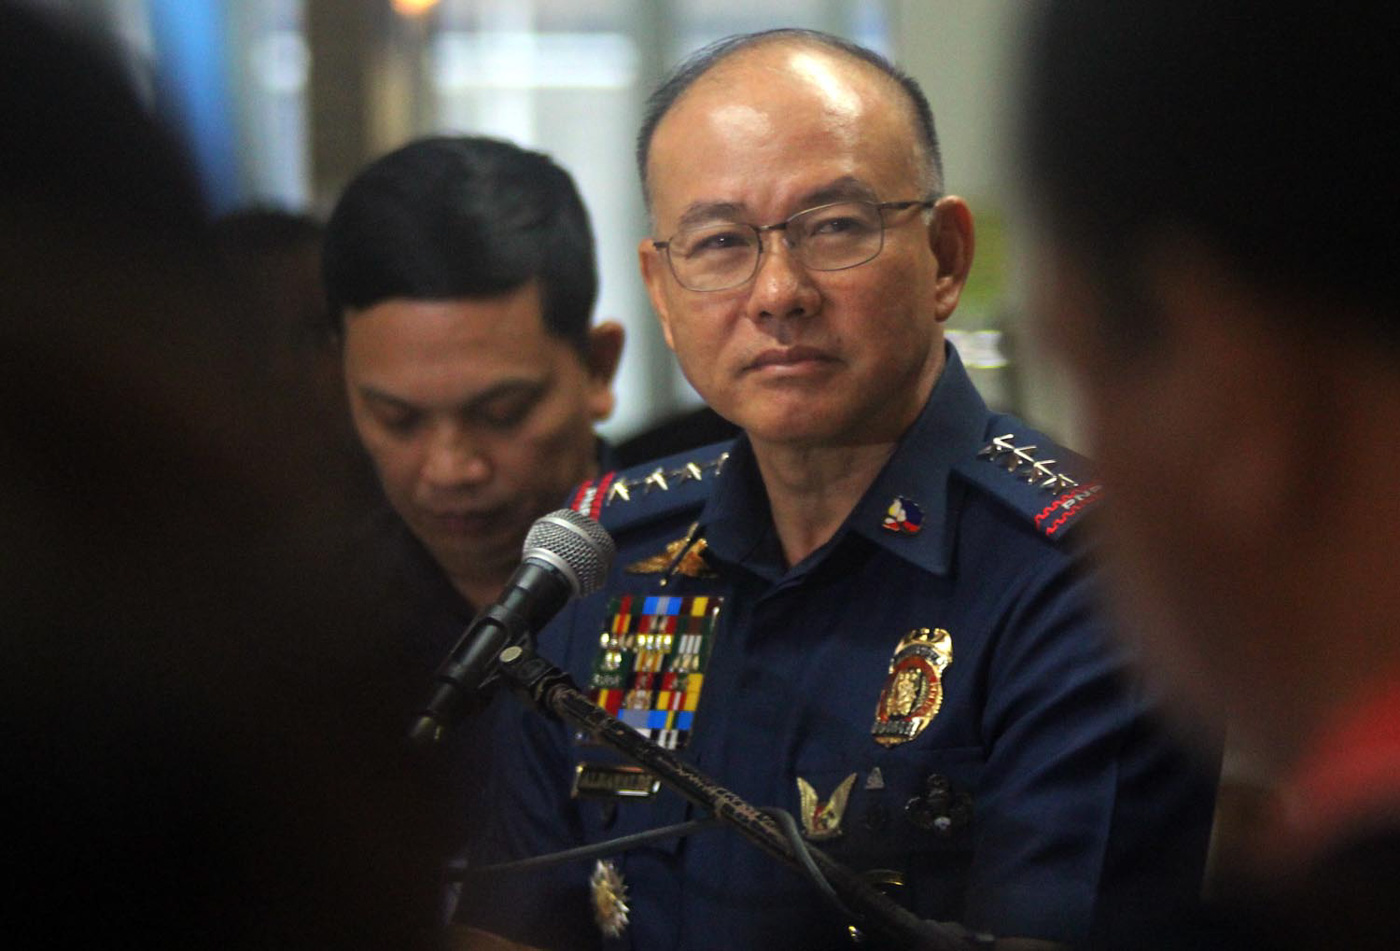 NEW ORDER. PNP chief Director General Oscar Albayalde vows to be strict in his leadership. File photo by Darren Langit/Rappler